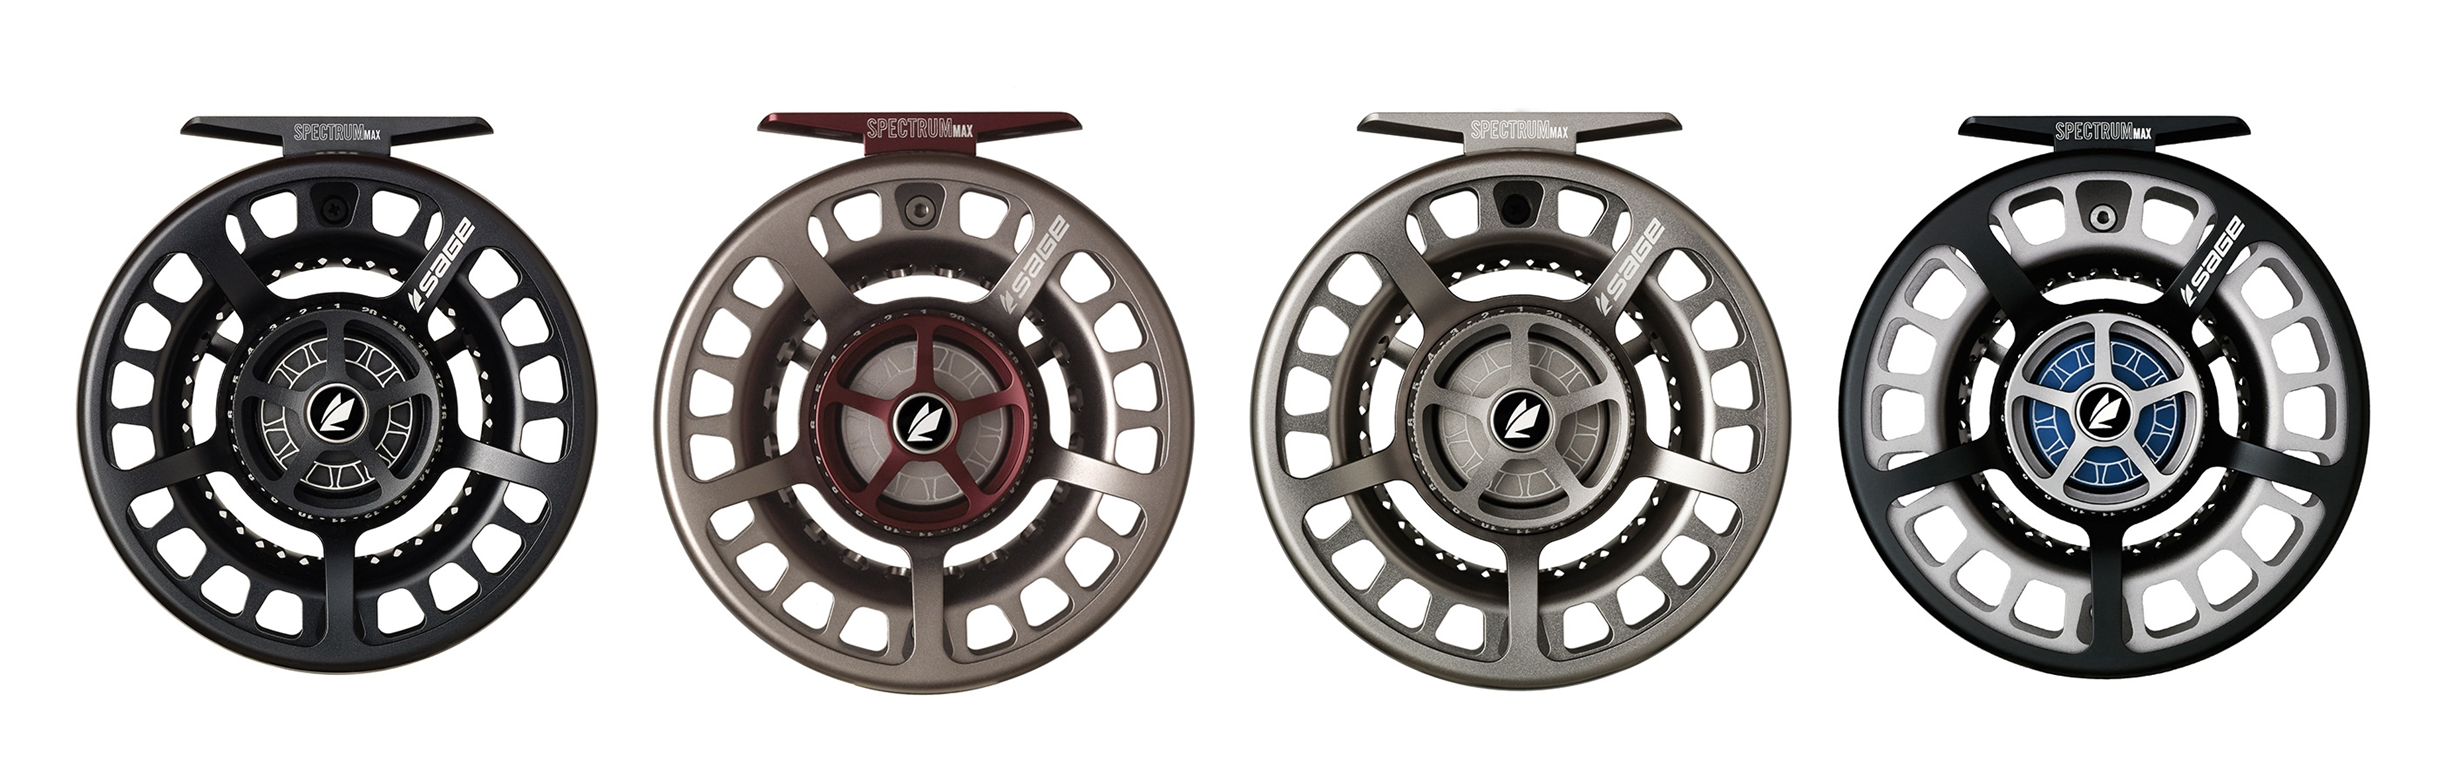 Sage Spectrum Max Fly Reel